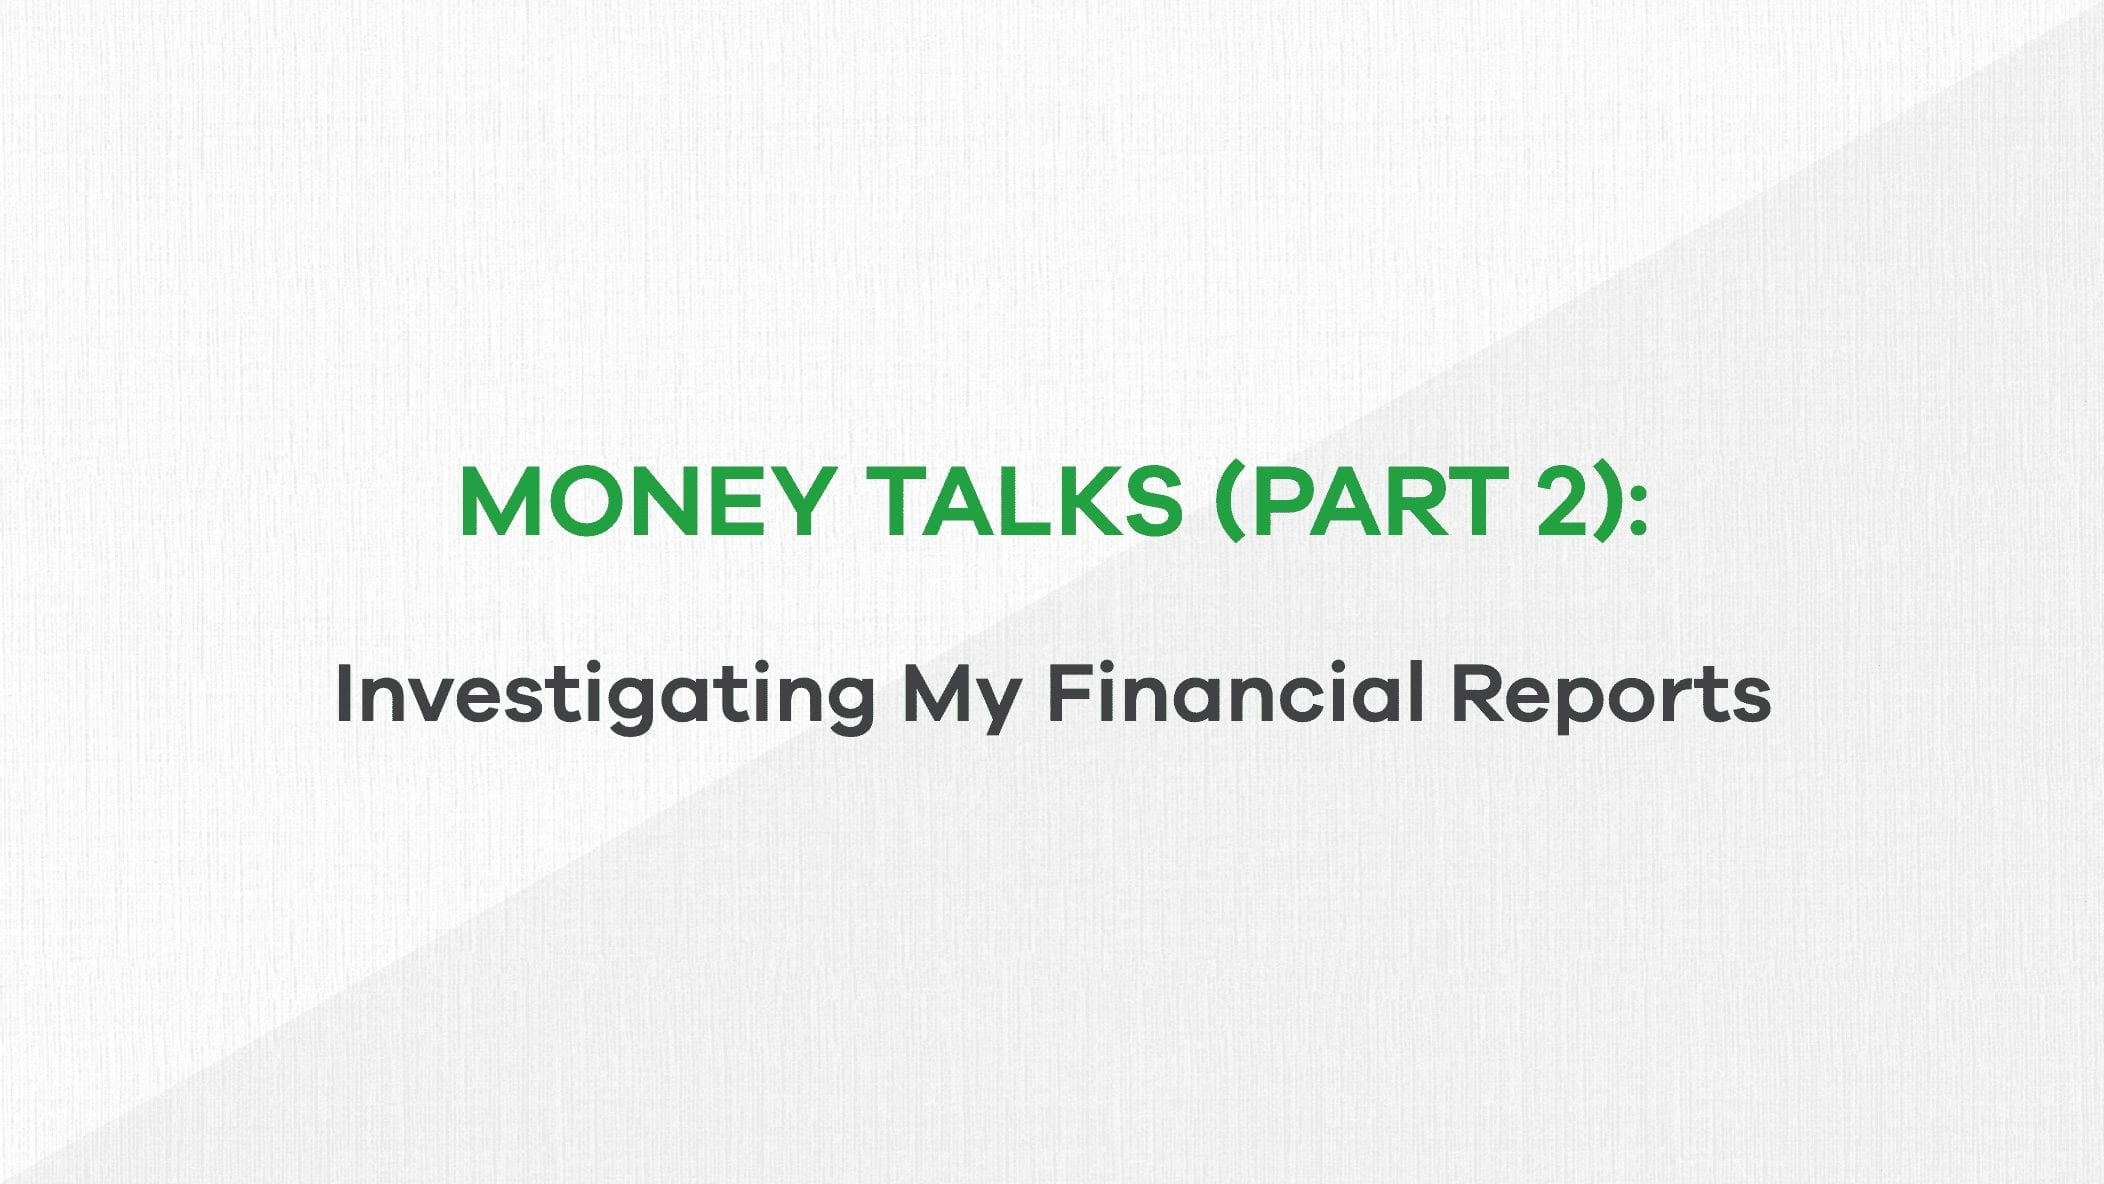 money talks part 2 - investigating financial reports